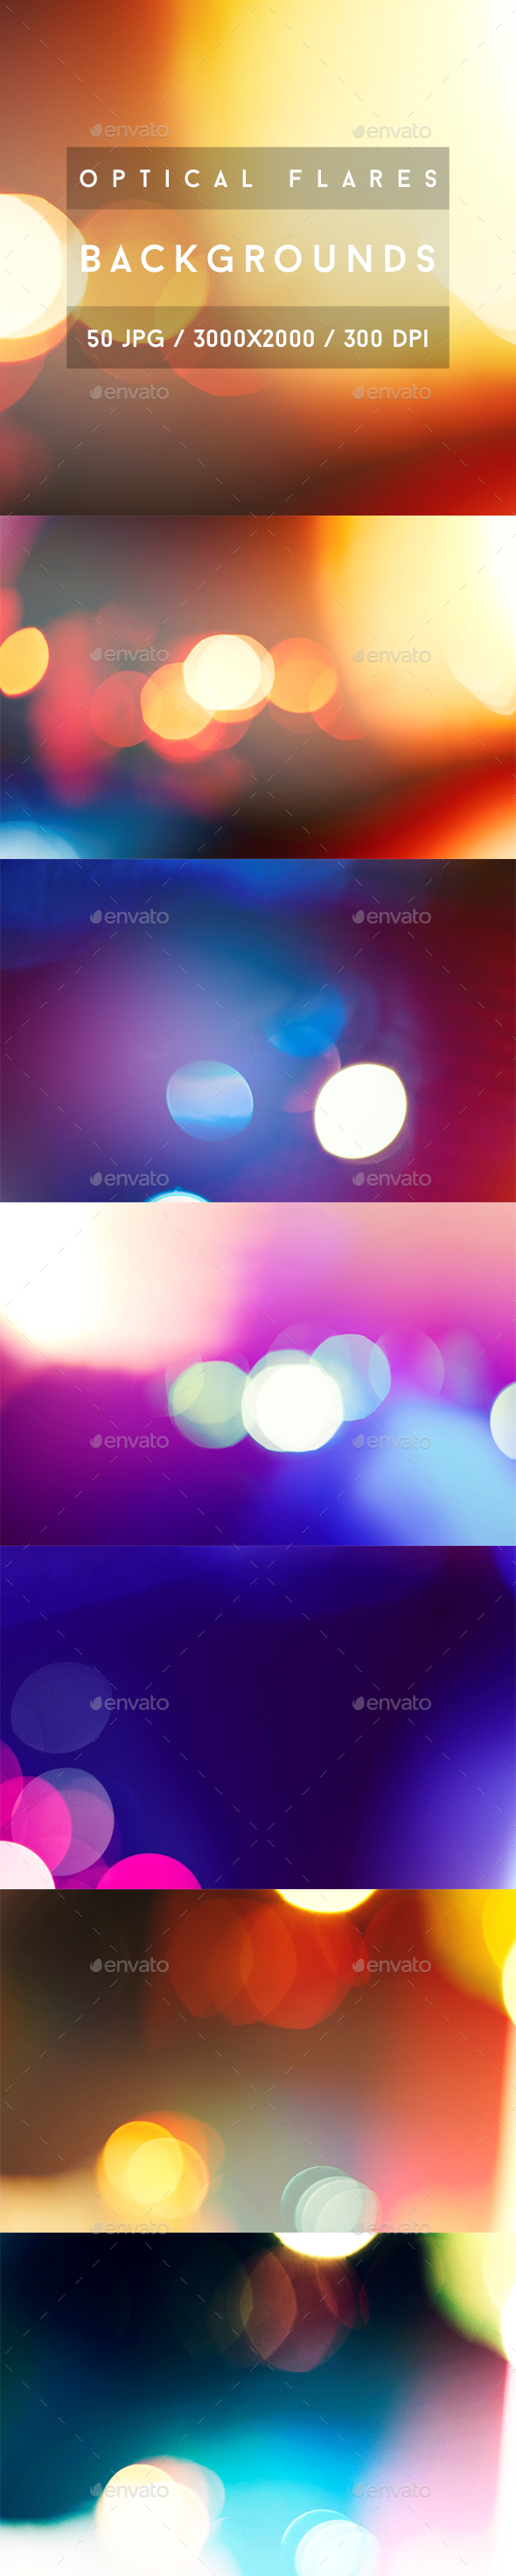 50 Optical Flares Backgrounds - Abstract Backgrounds